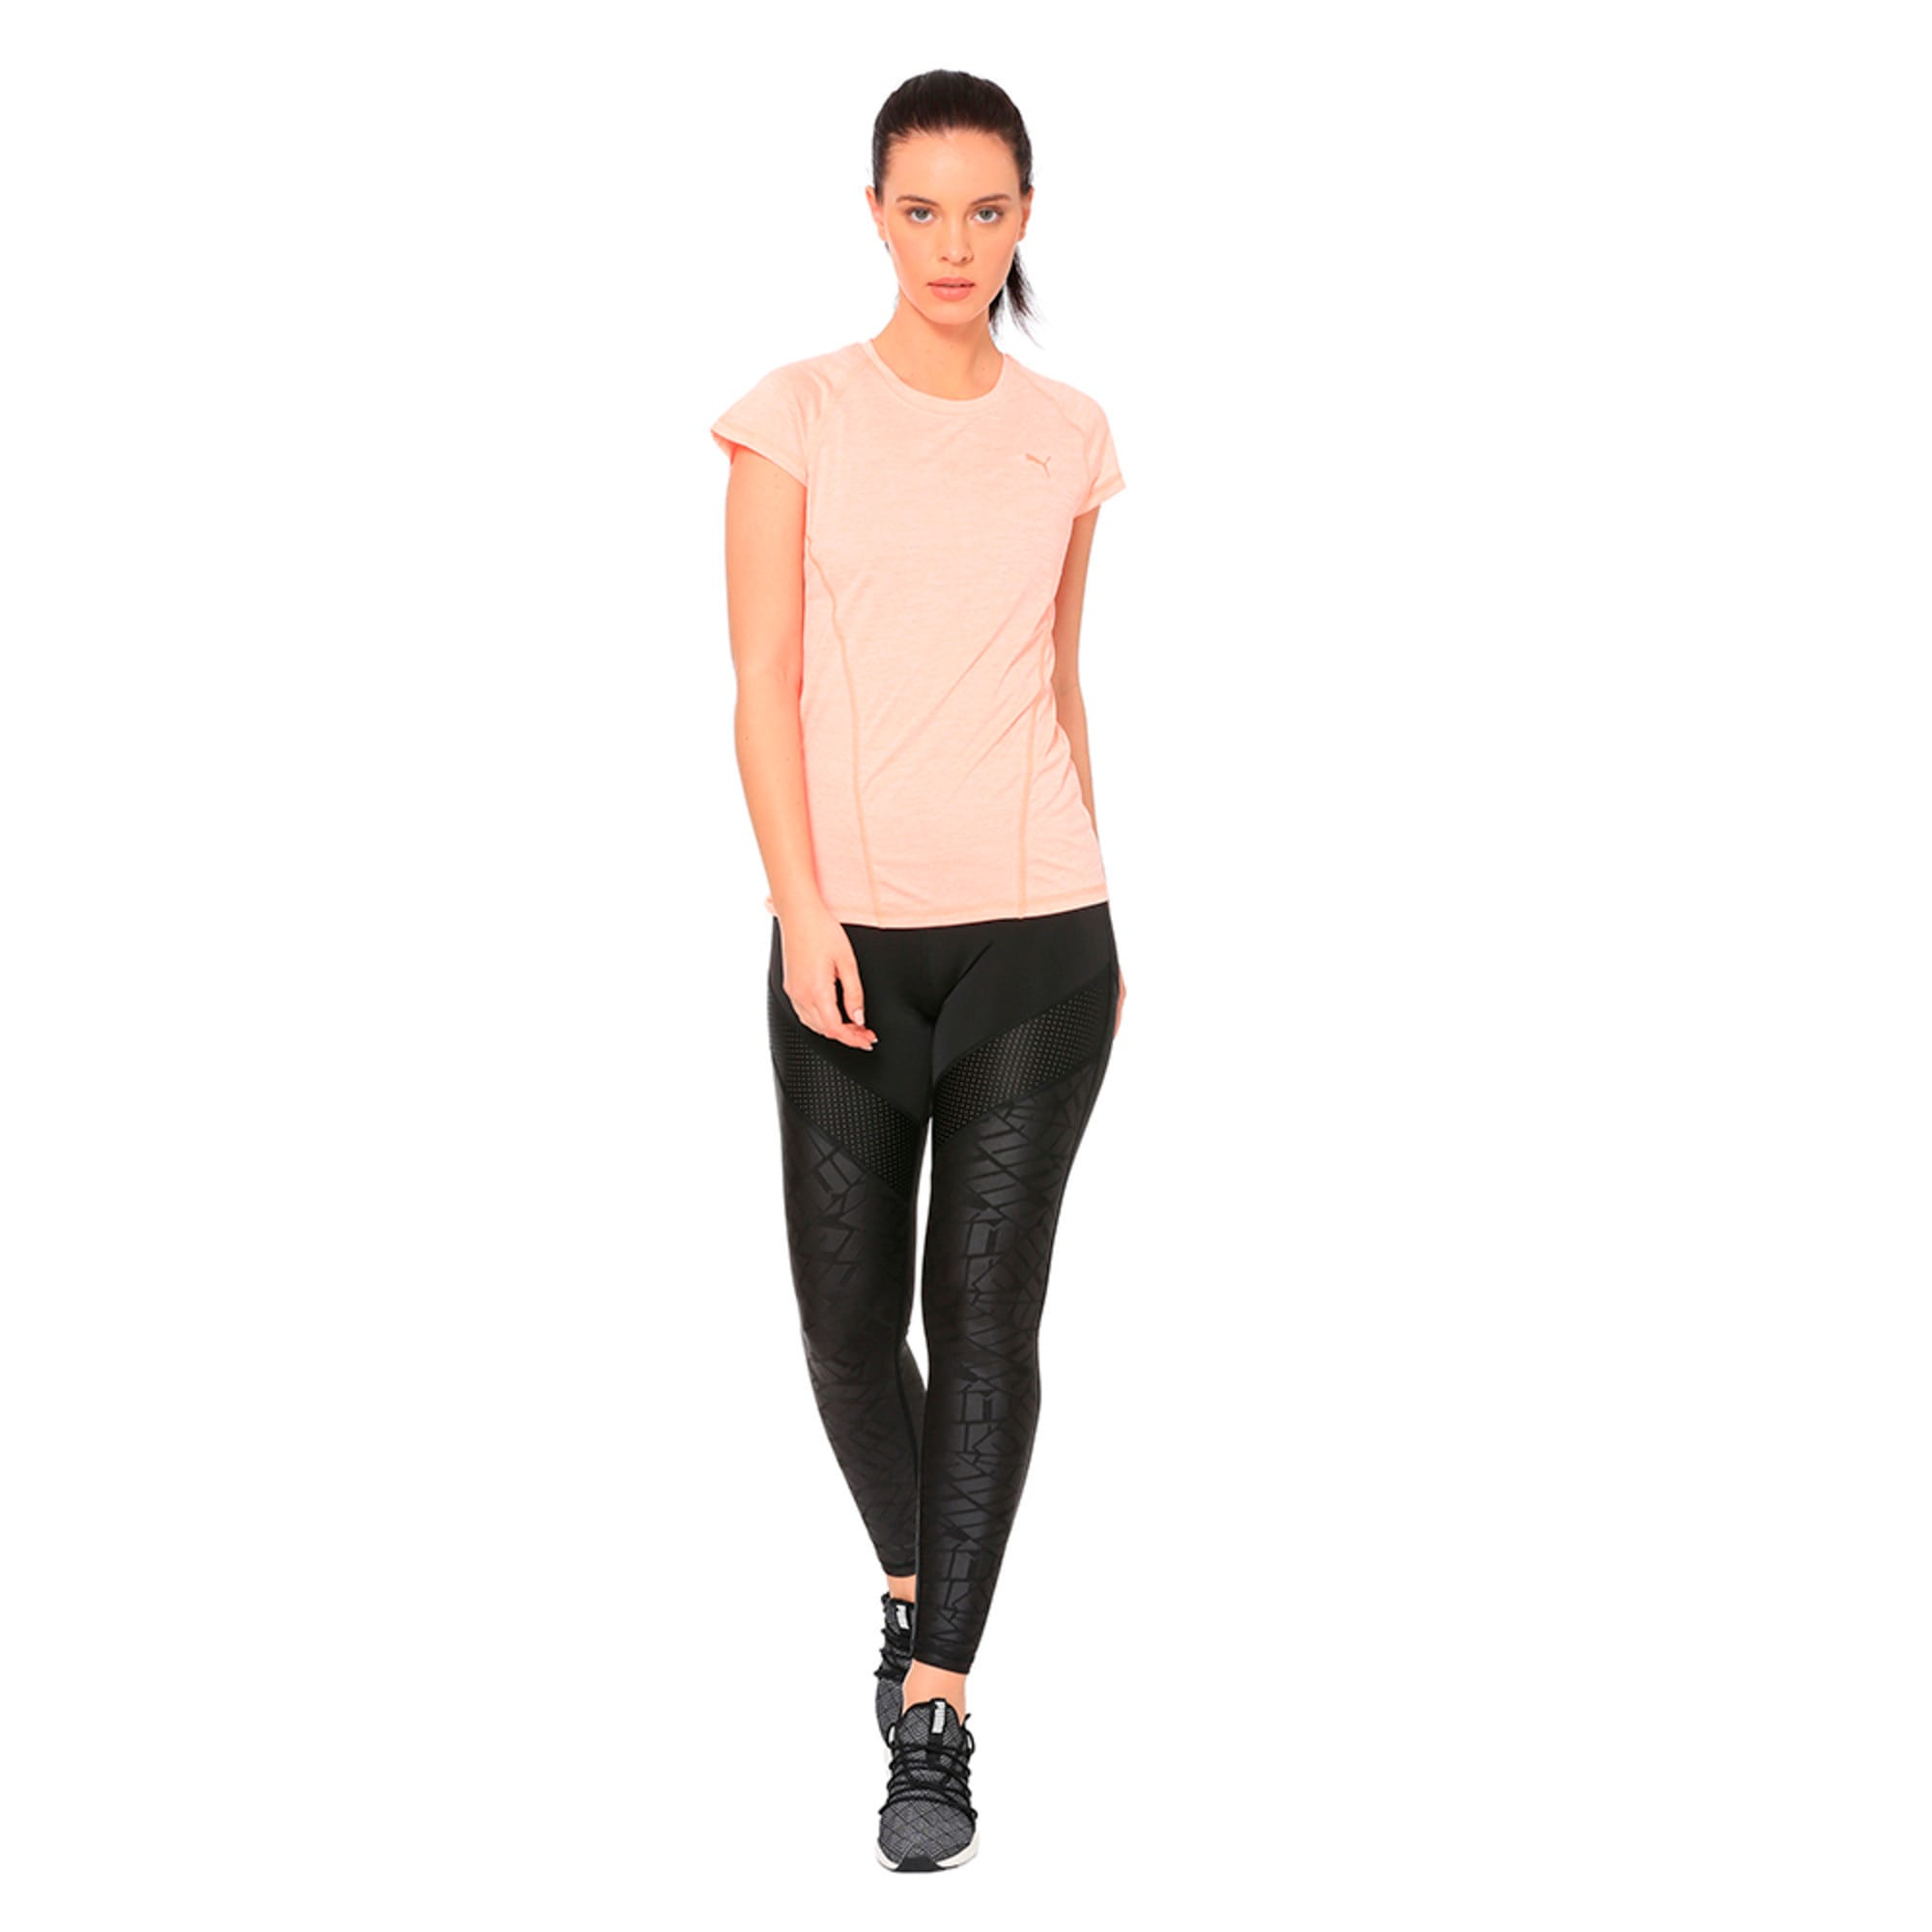 Thumbnail 1 of DeLite Tee, Bright Peach Heather, medium-IND